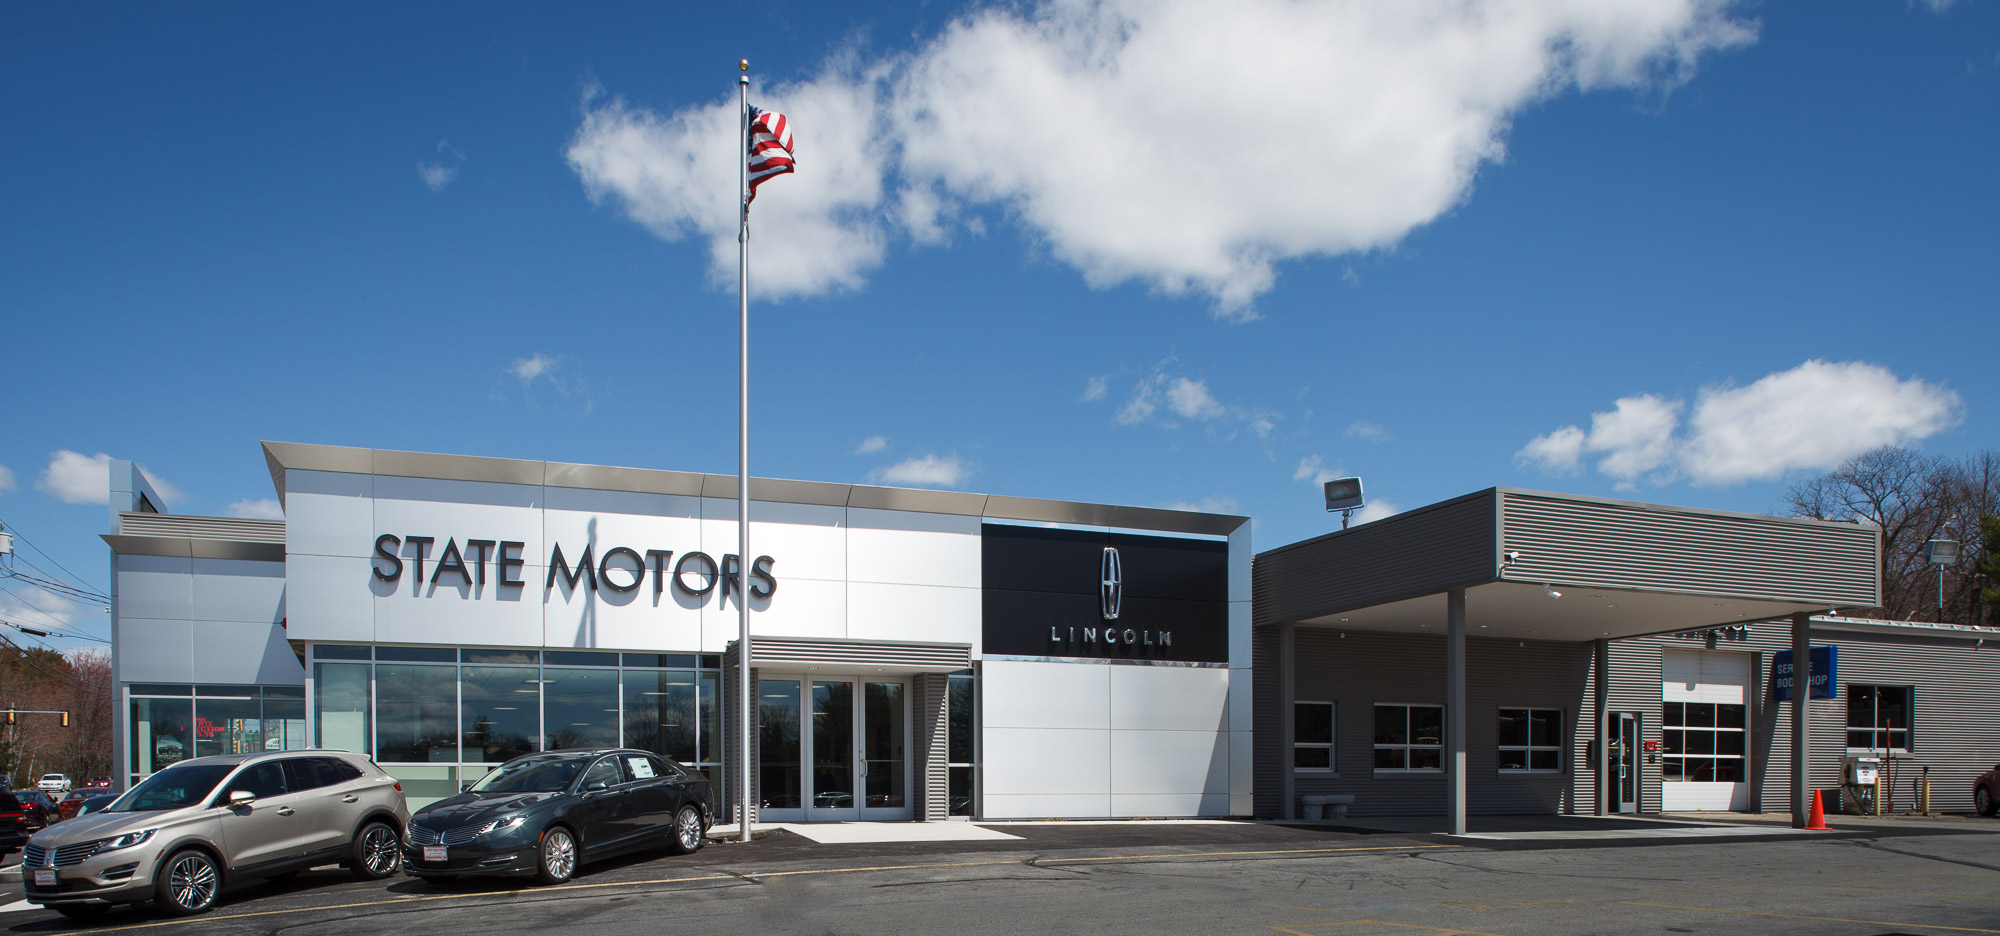 State motors channel building company for State motors manchester nh